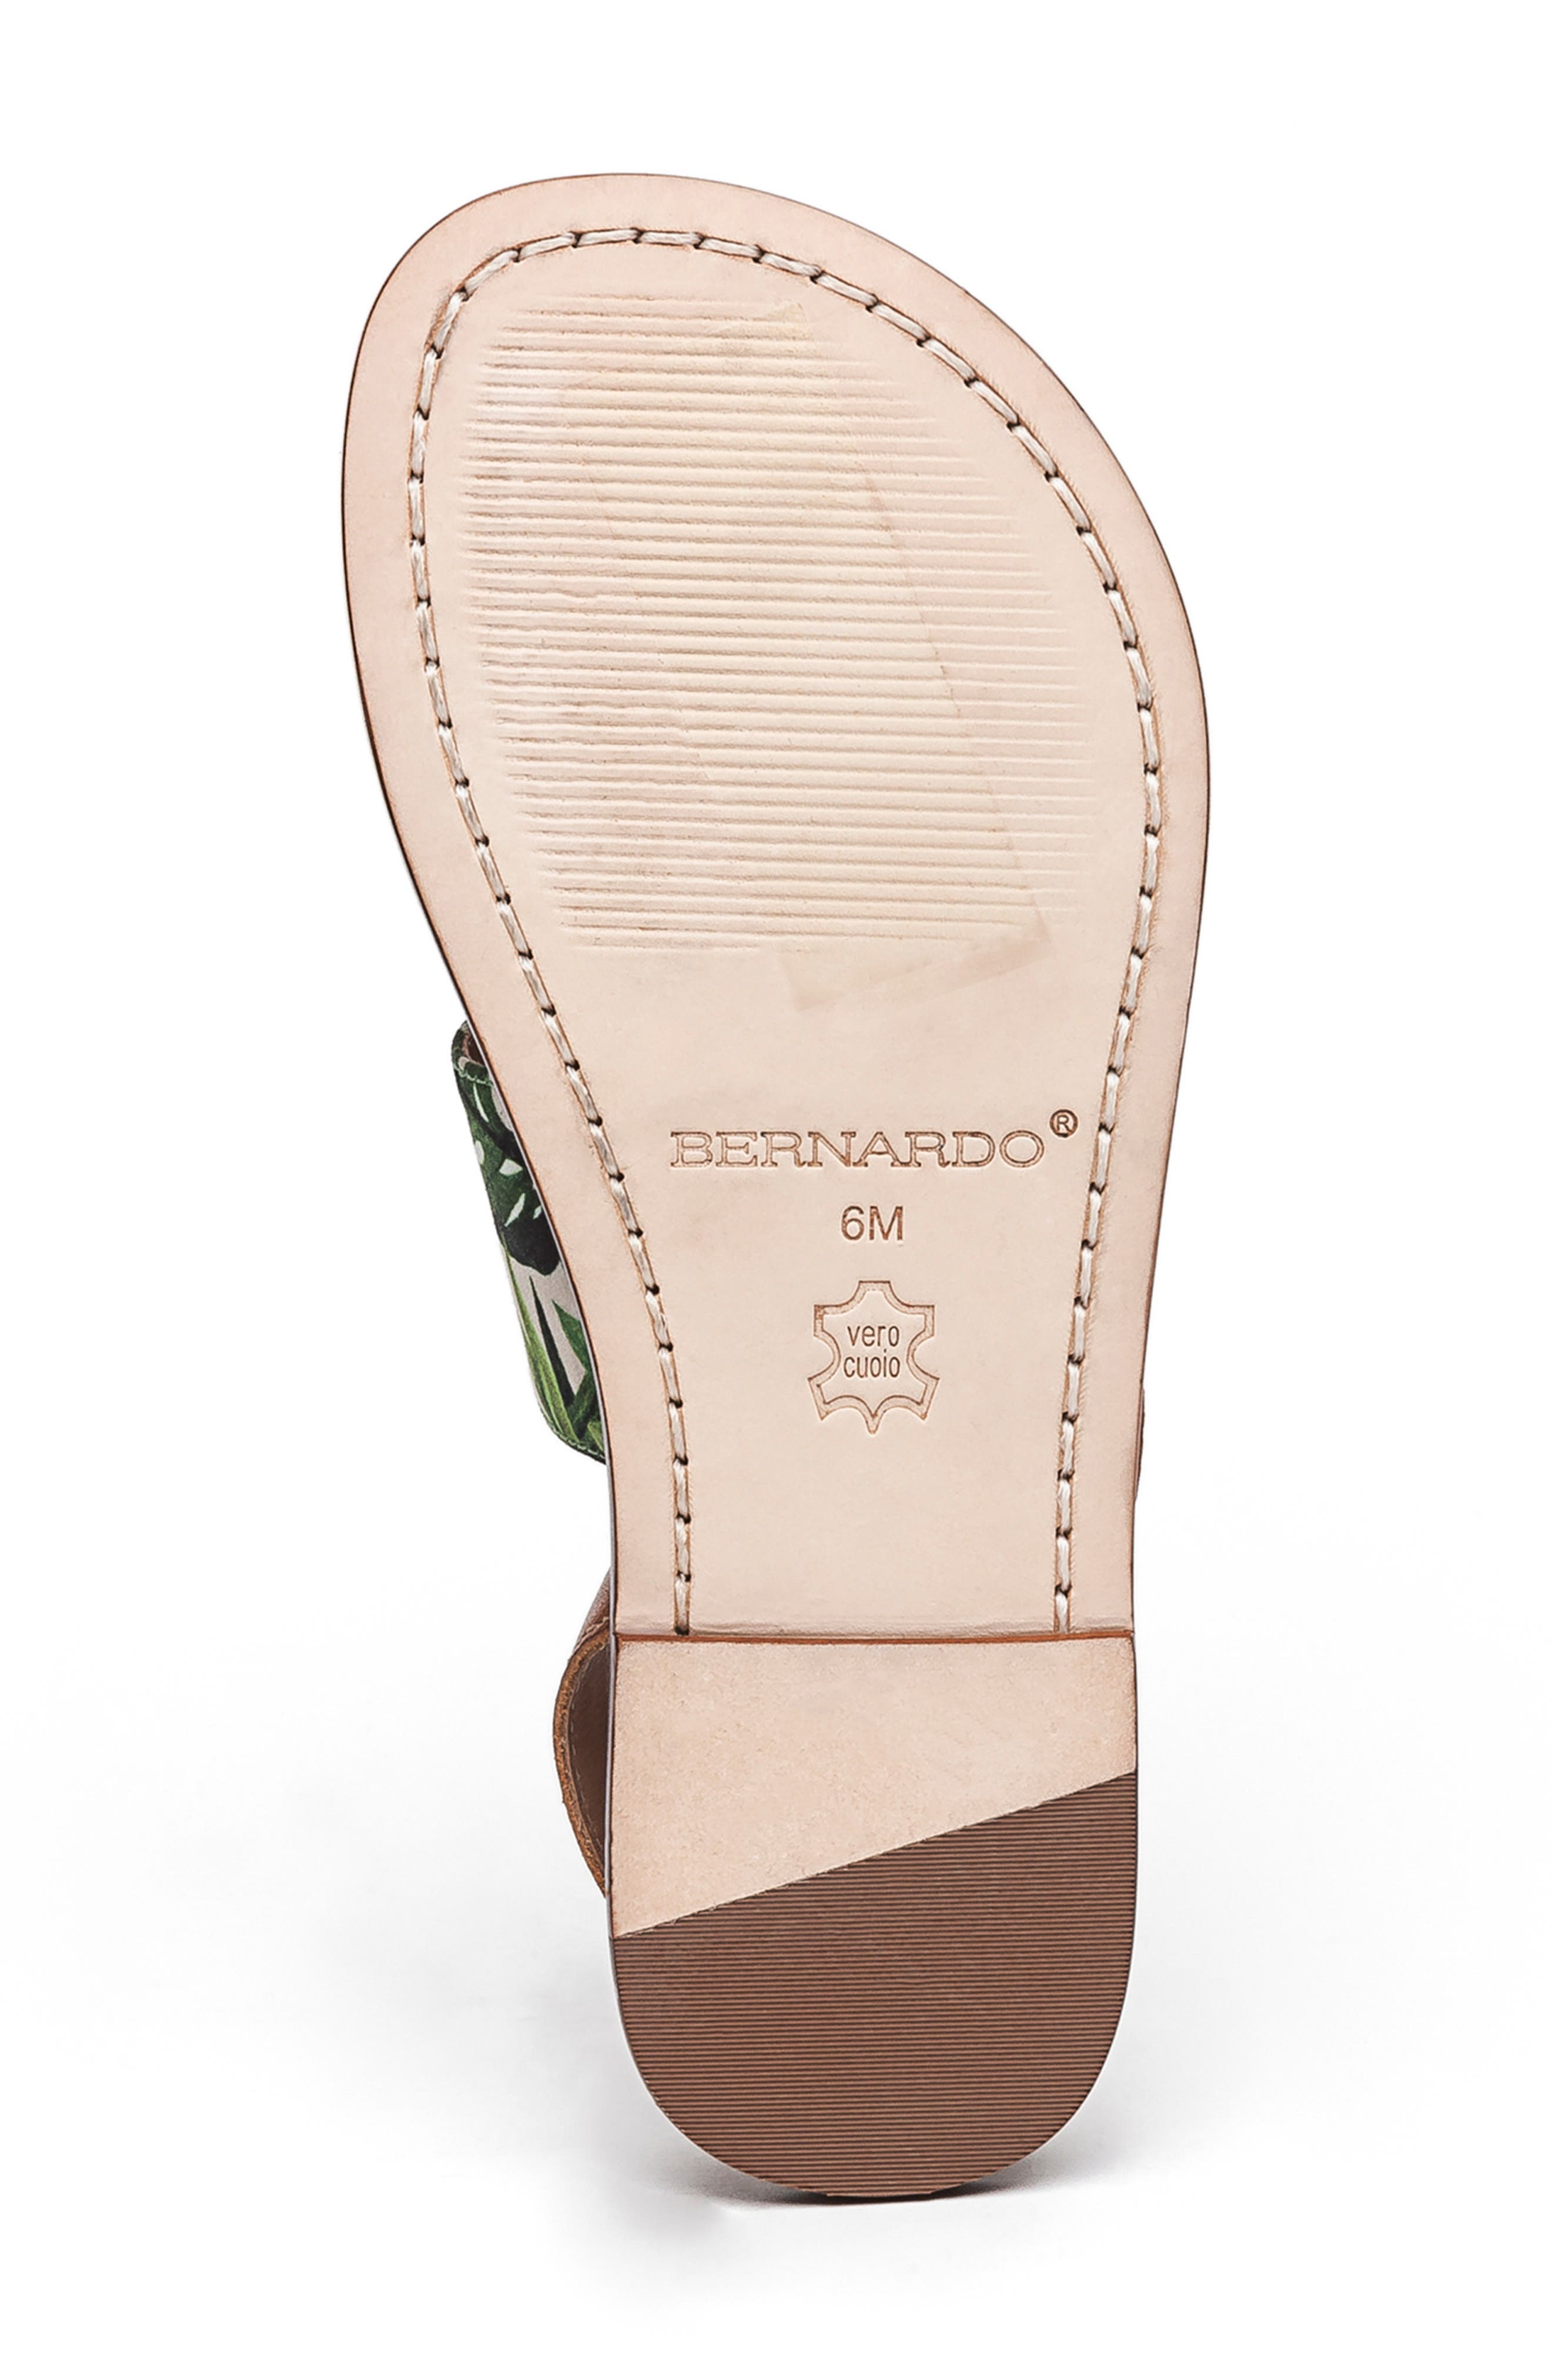 BERNARDO, Footwear Meg Thong Sandal, Alternate thumbnail 6, color, PALM FABRIC/ LUGGAGE LEATHER